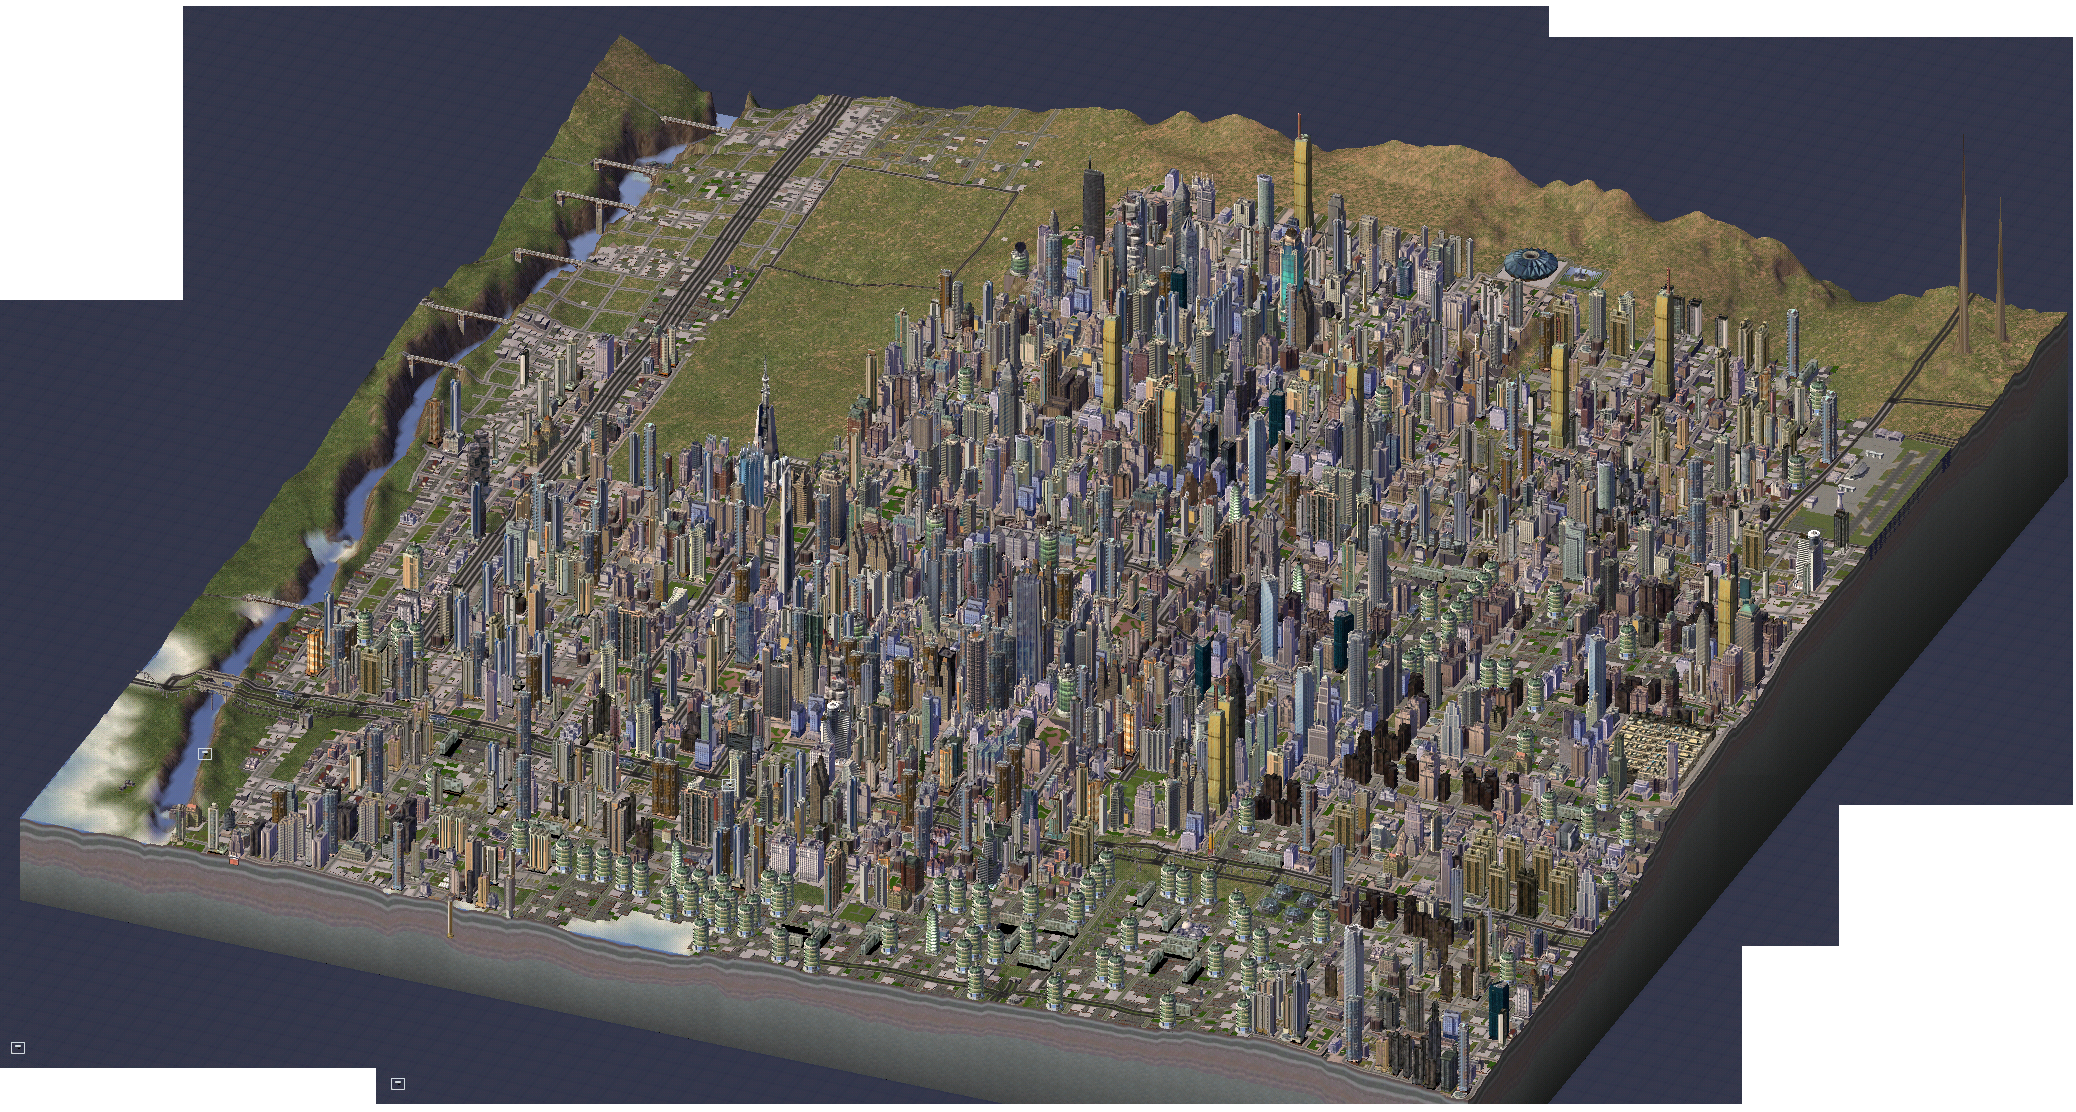 Fullstitch%20of%20the%20city.png